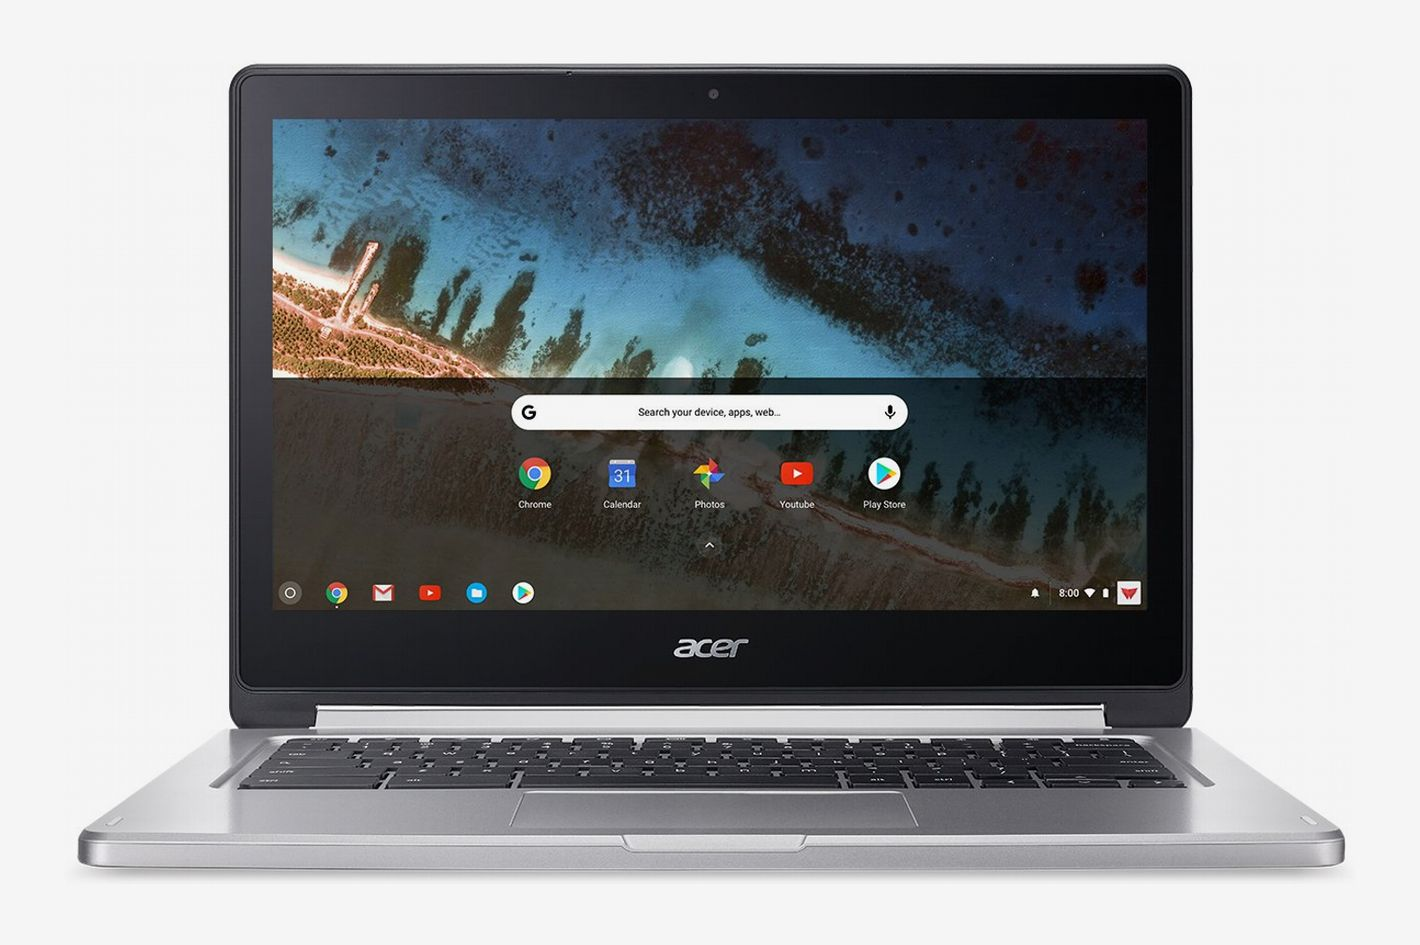 Acer Chromebook R 13 Convertible 13.3-inch Full HD Touch